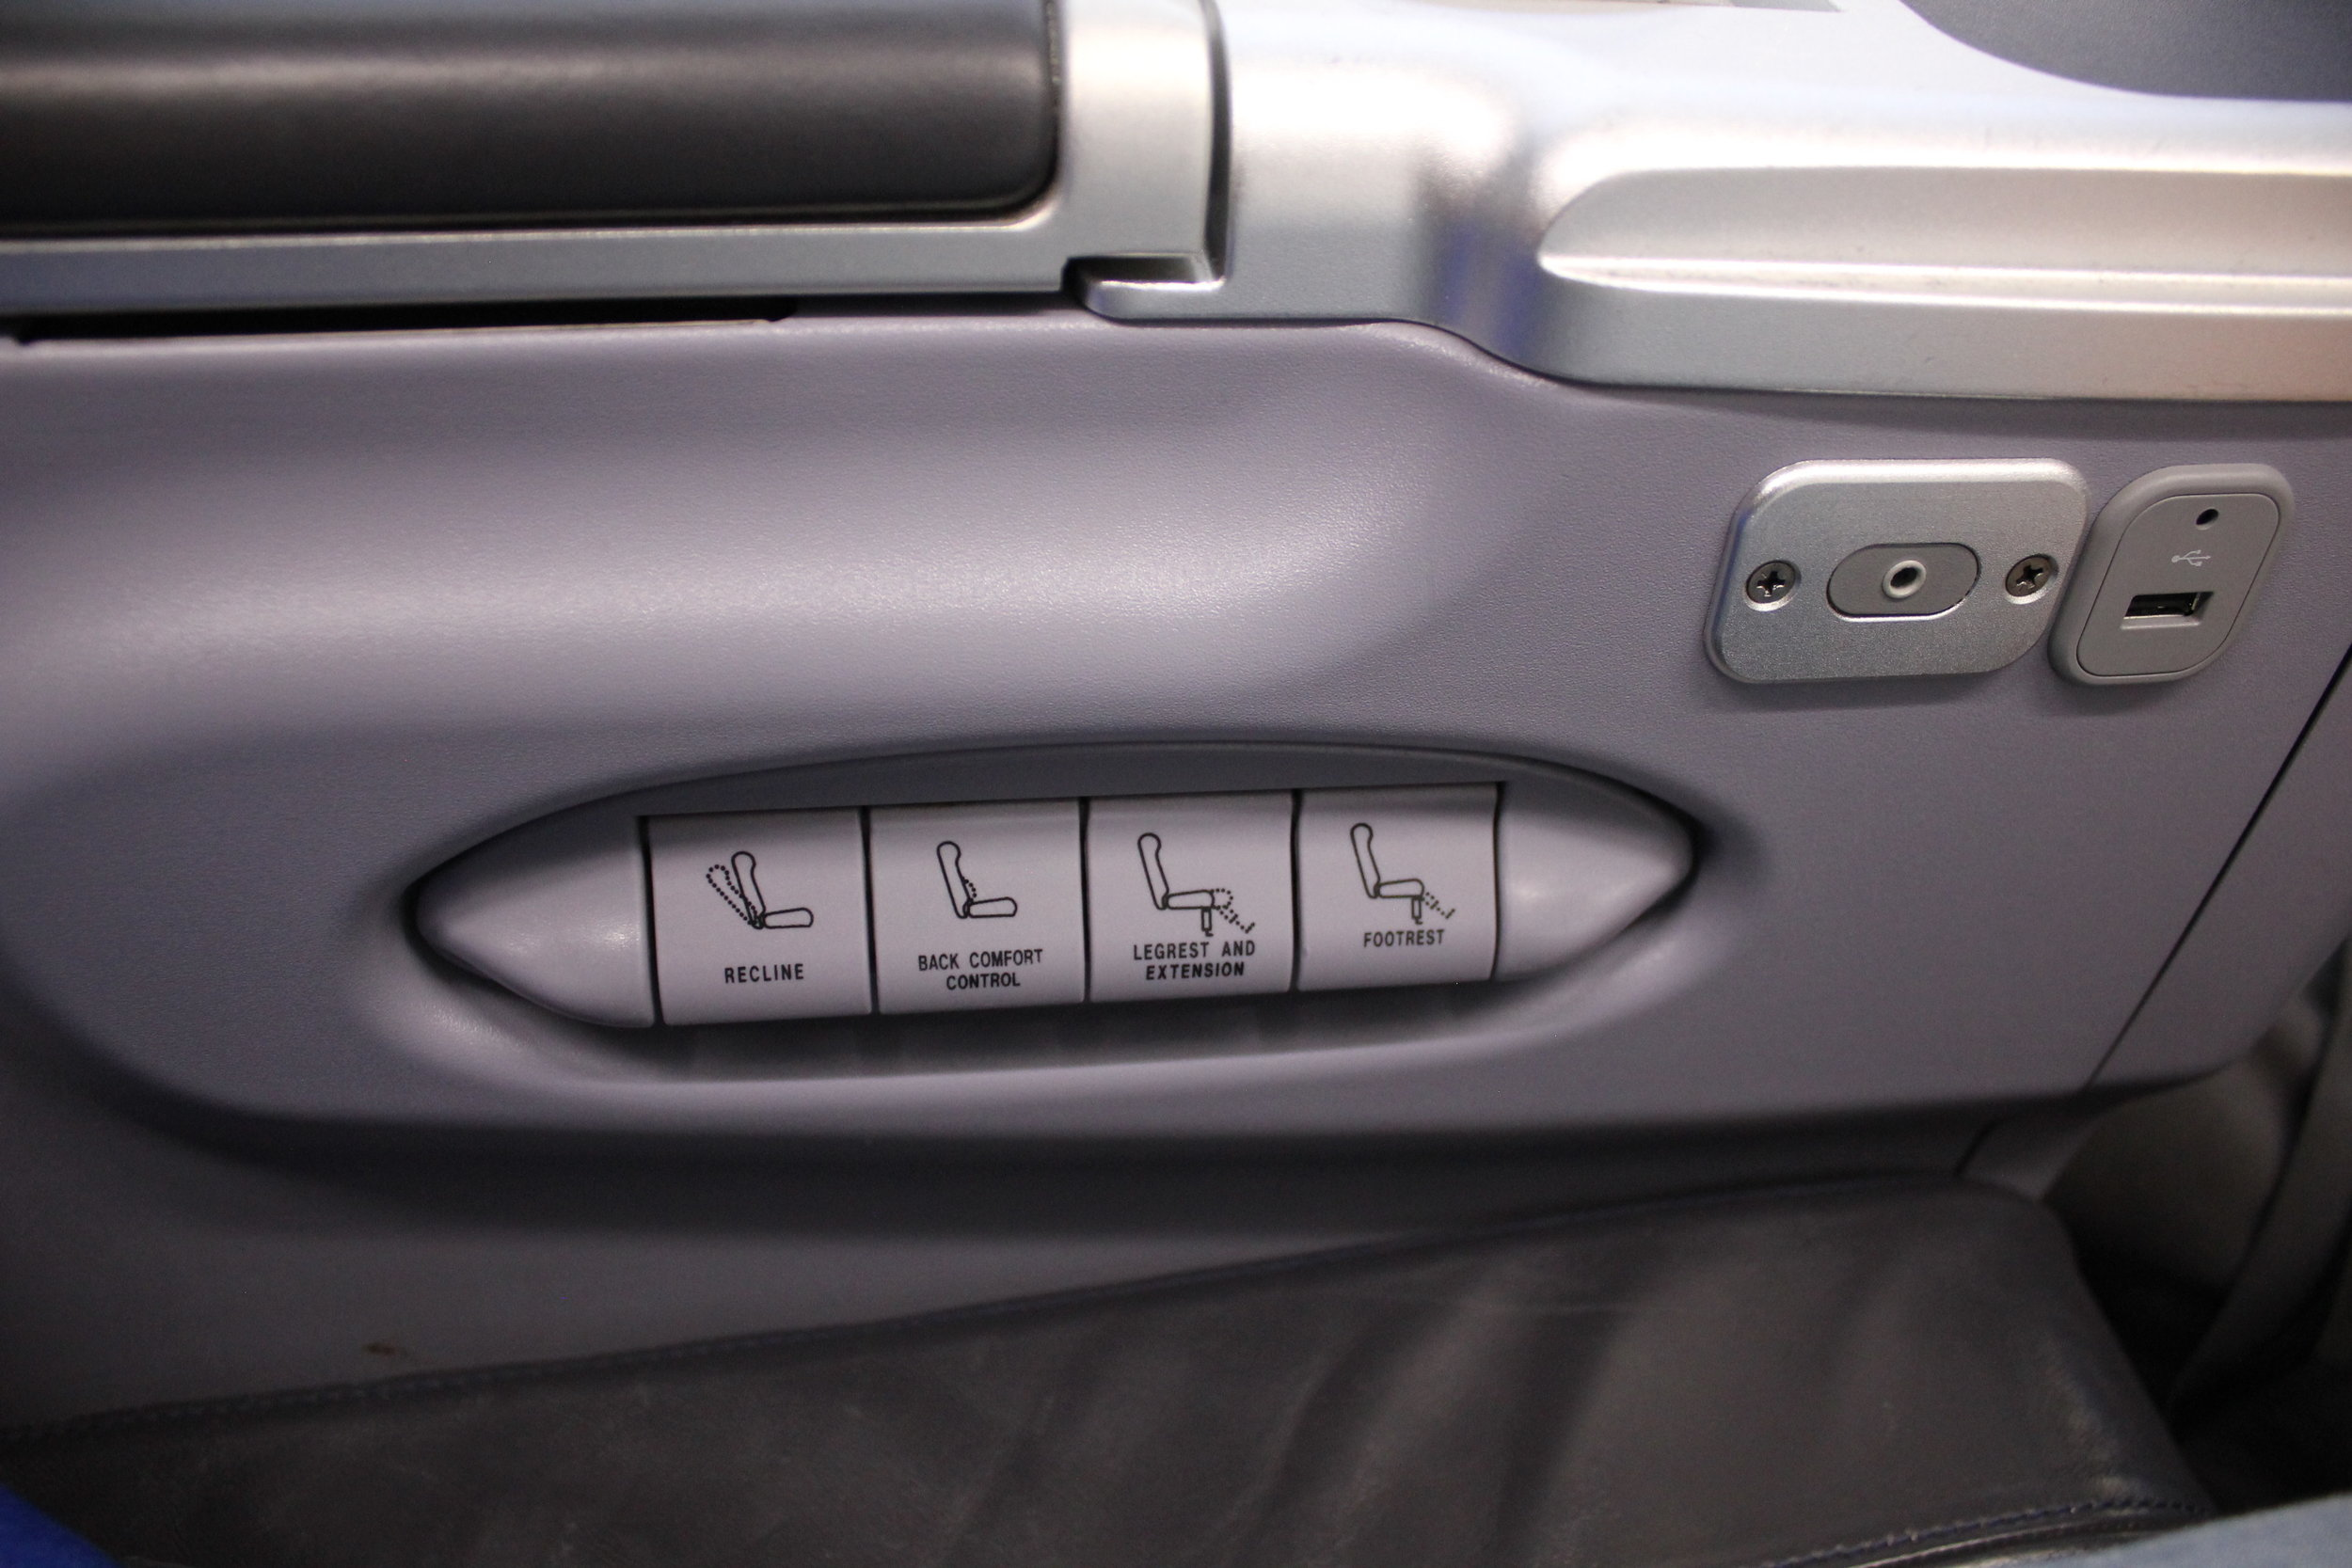 Copa Airlines business class – Seat controls